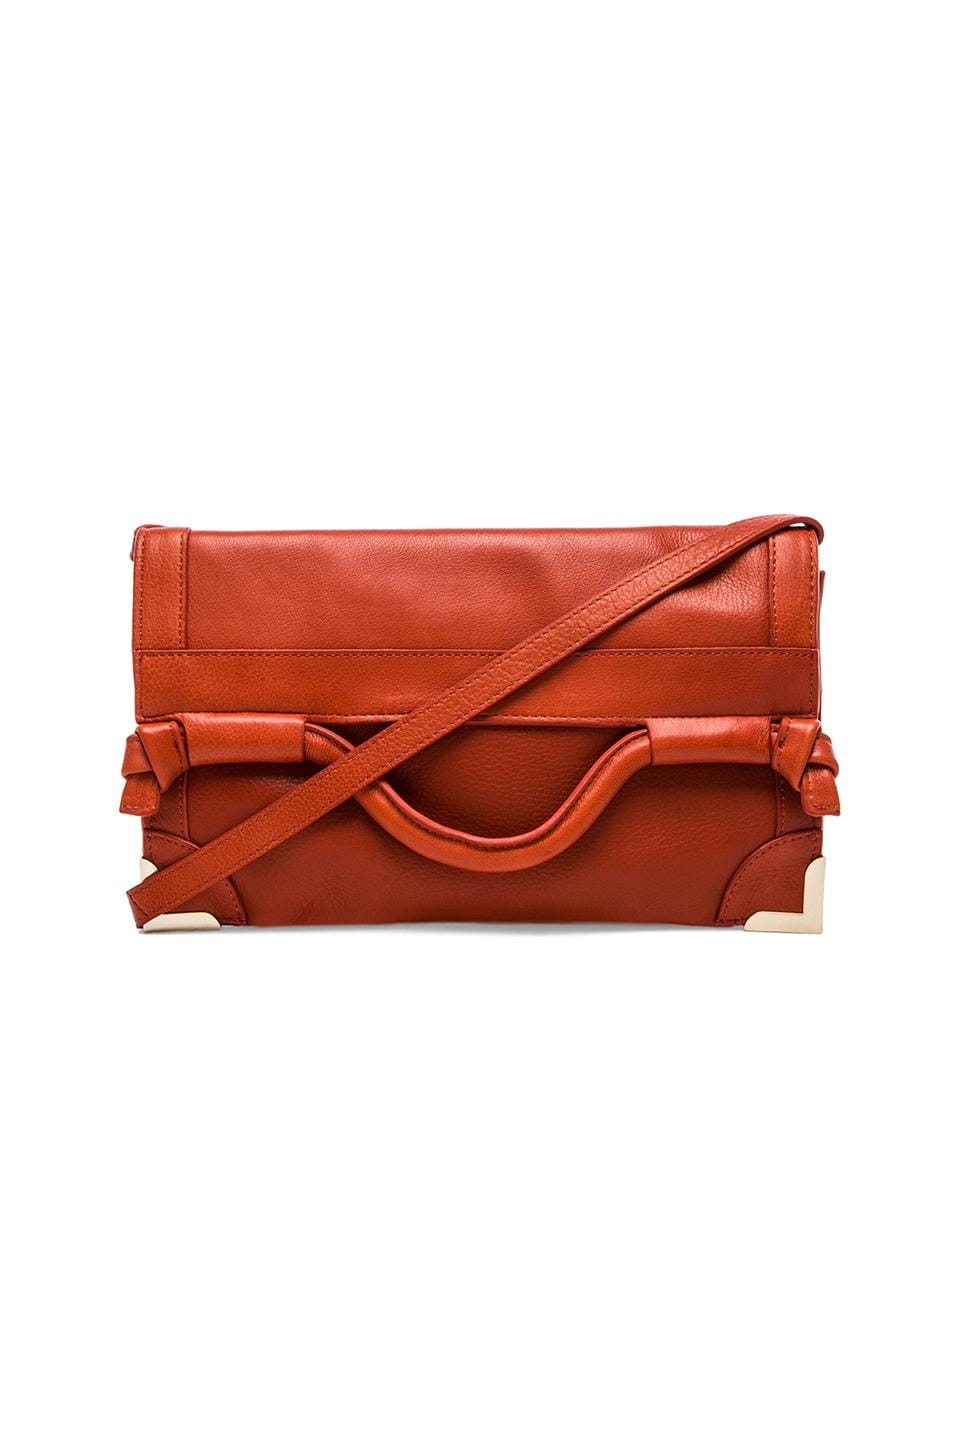 Foley + Corinna Framed Flap Crossbody in Spice